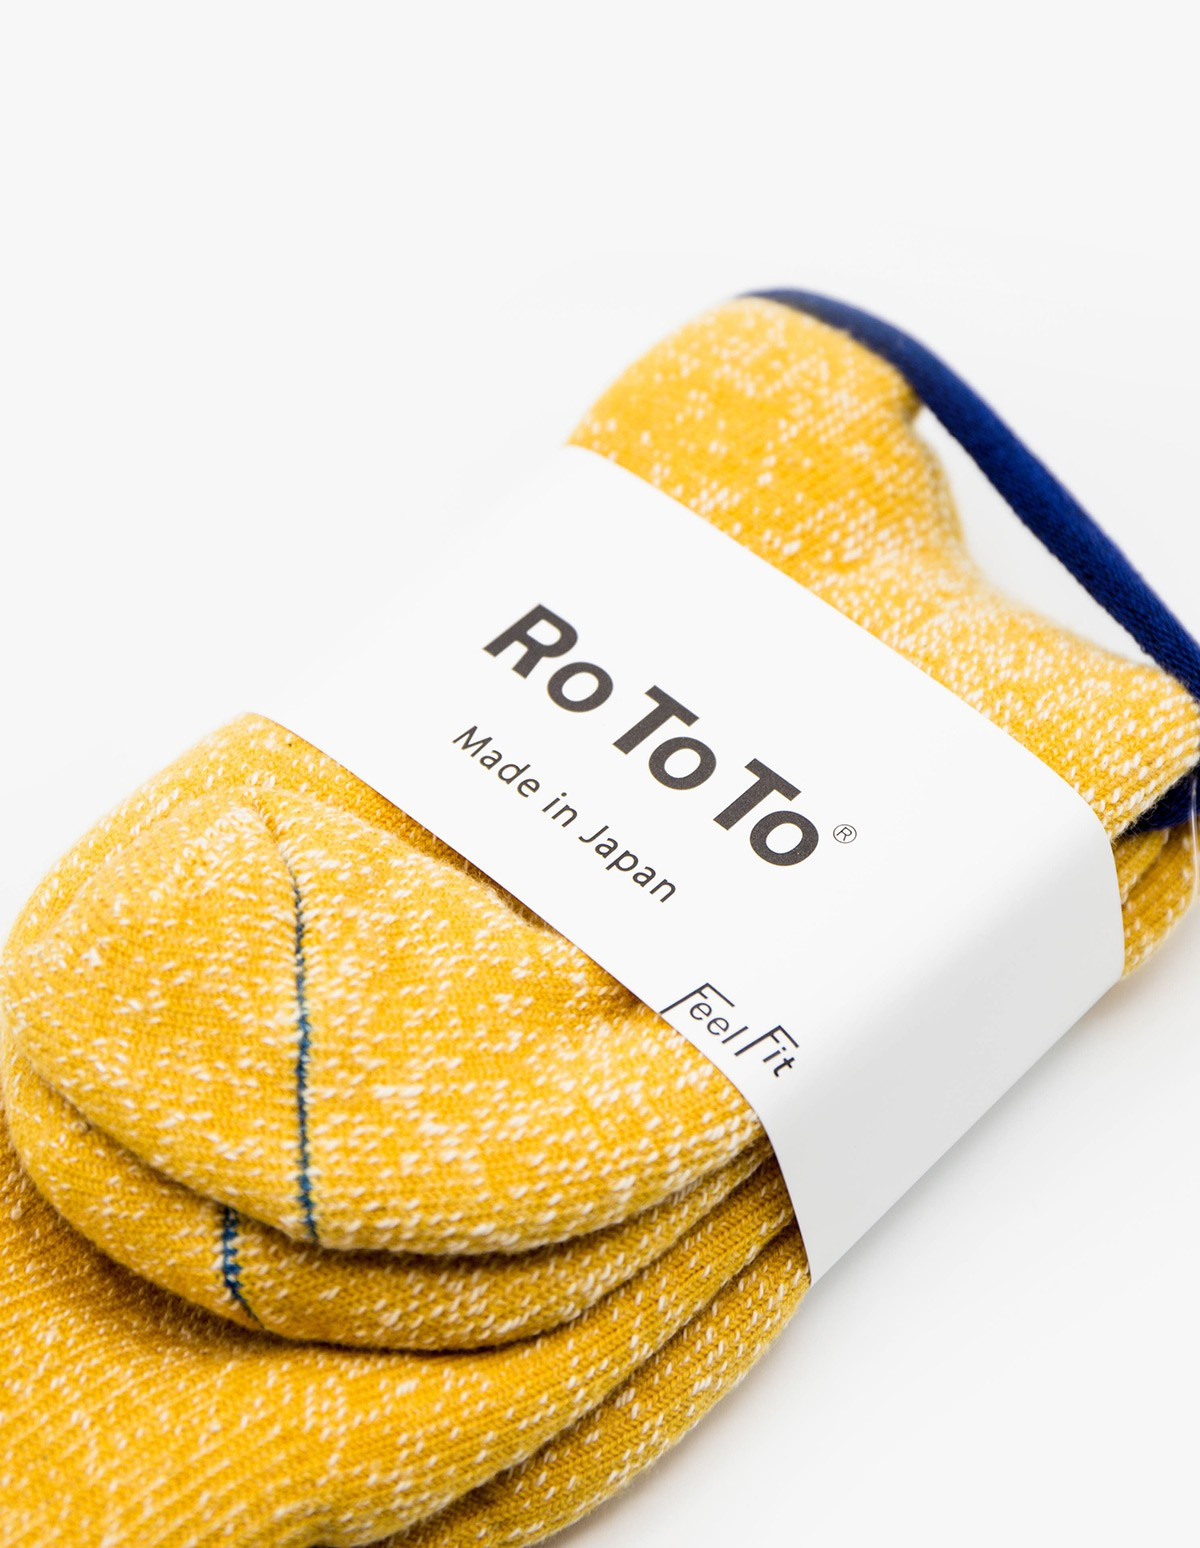 RoToTo Double Face Socks in Yellow